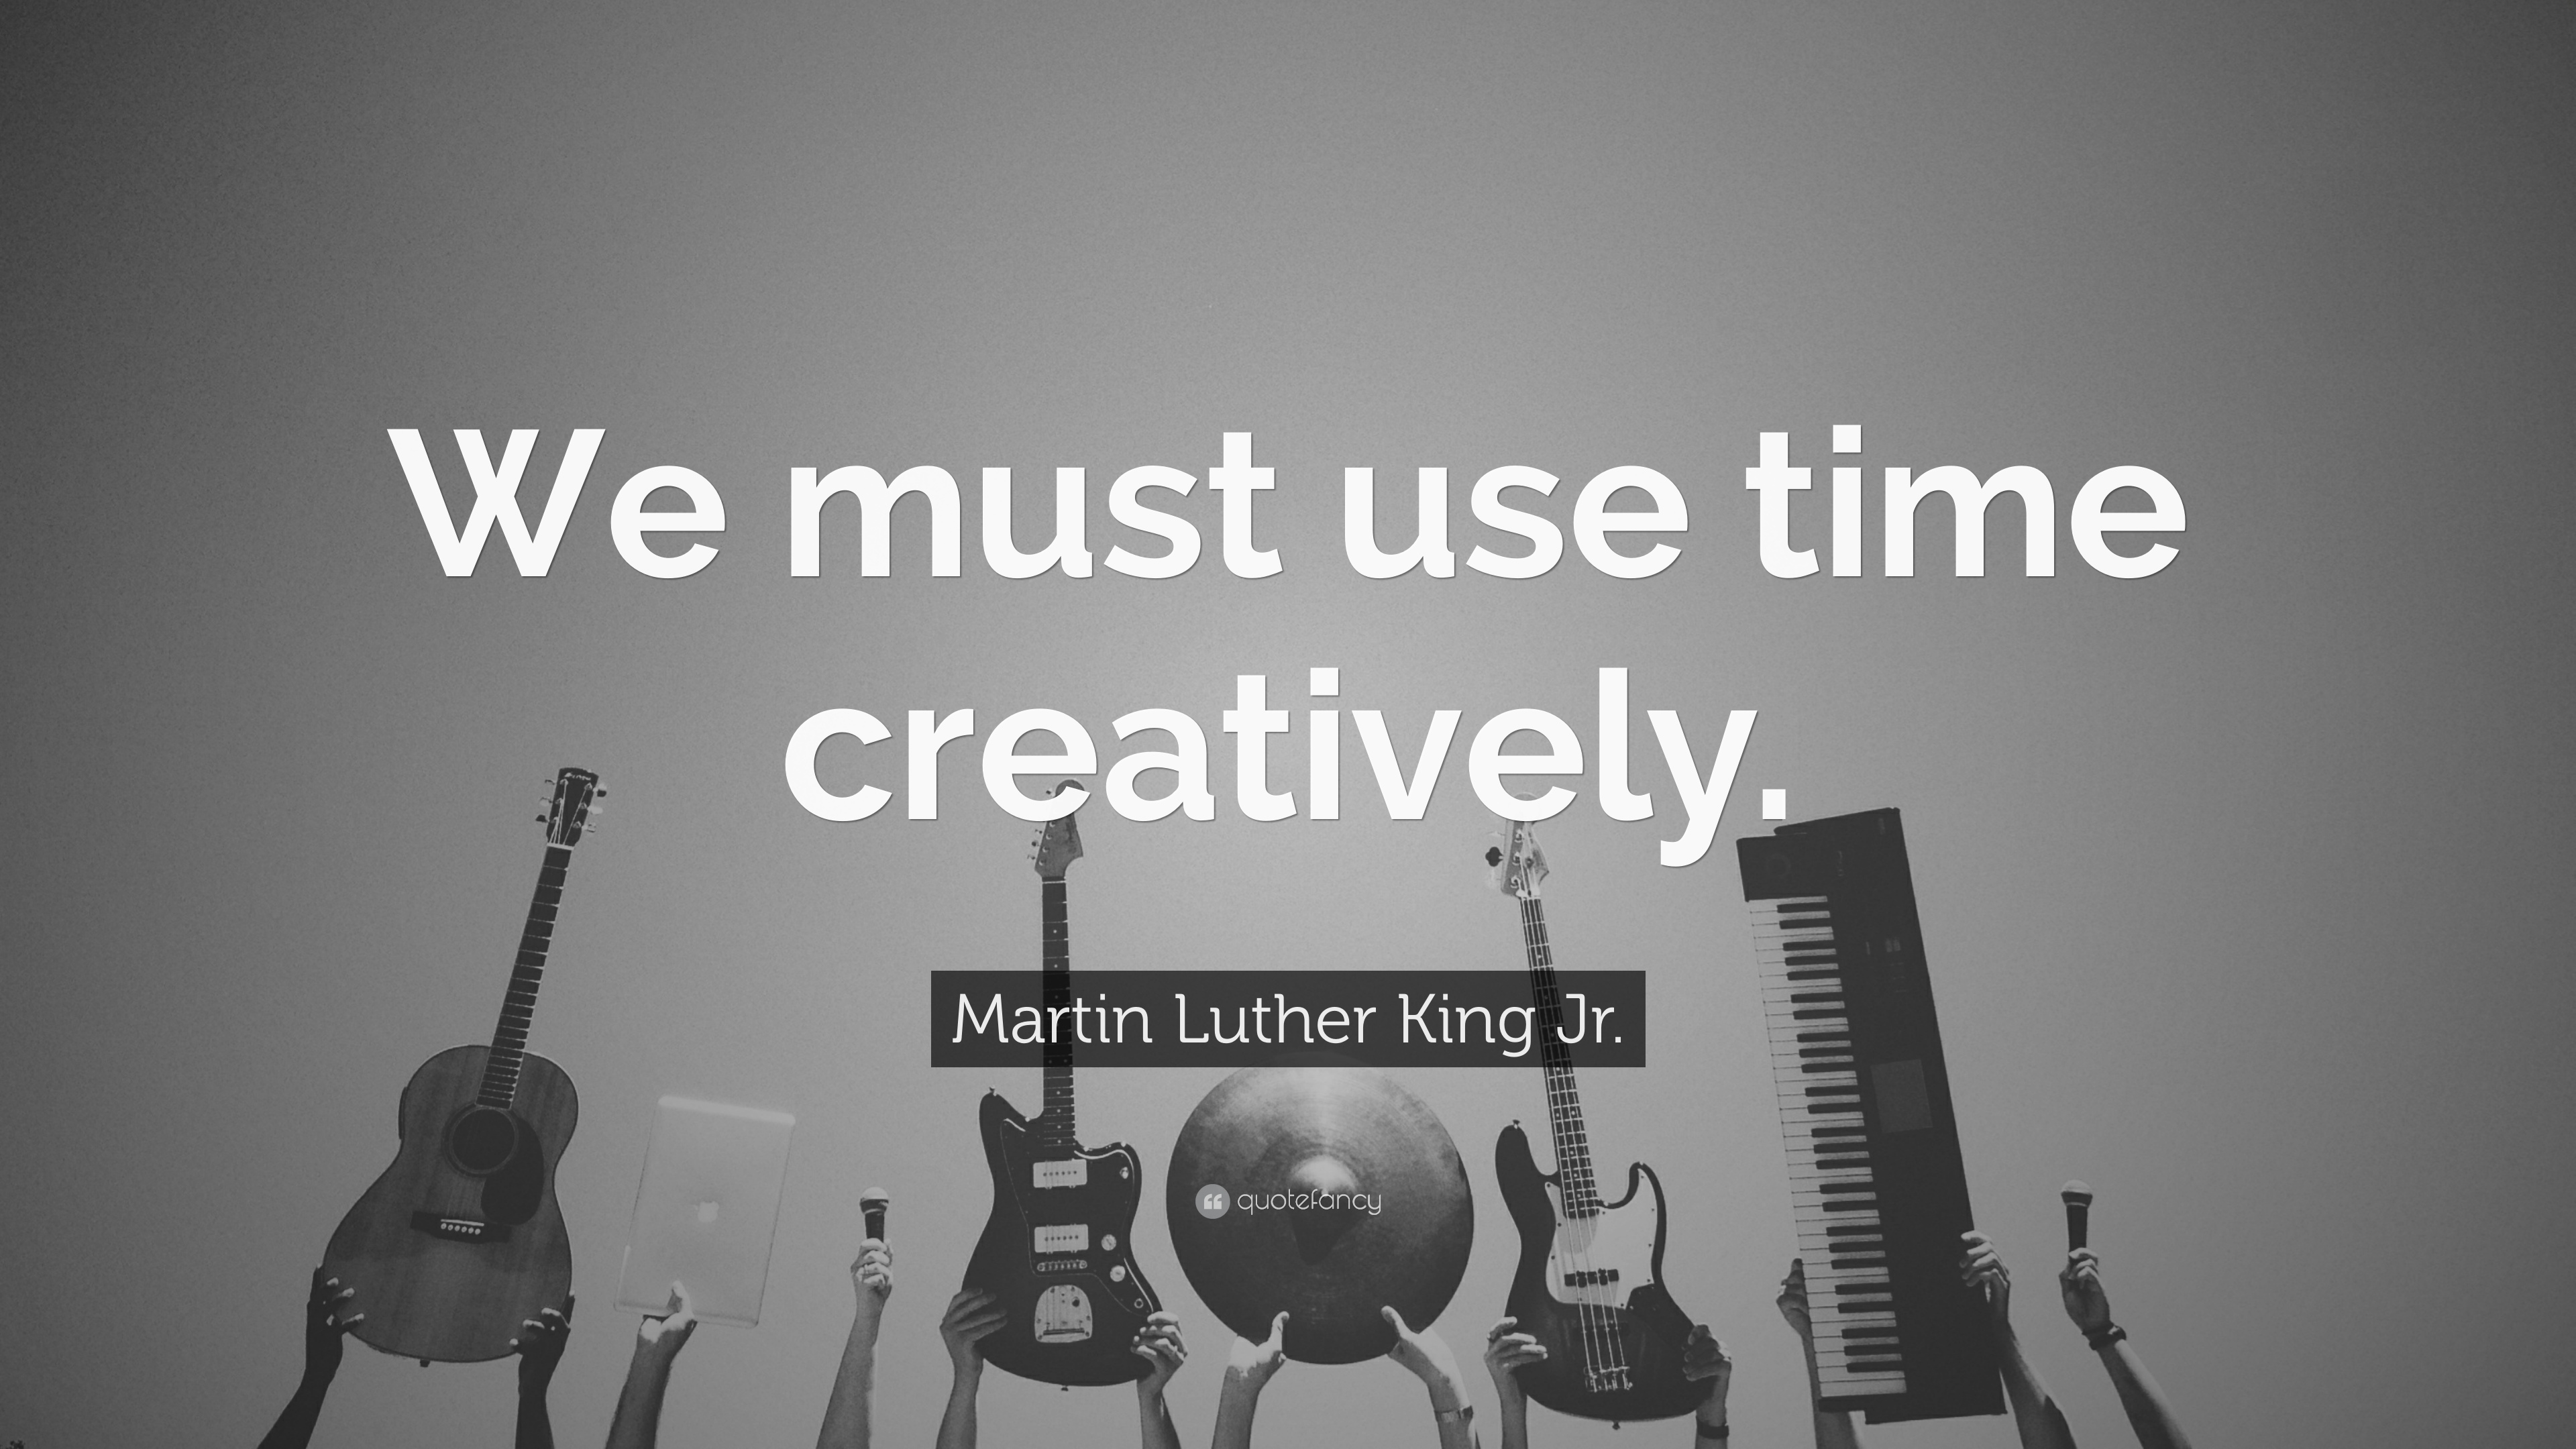 martin luther king jr quotes 100 wallpapers quotefancy